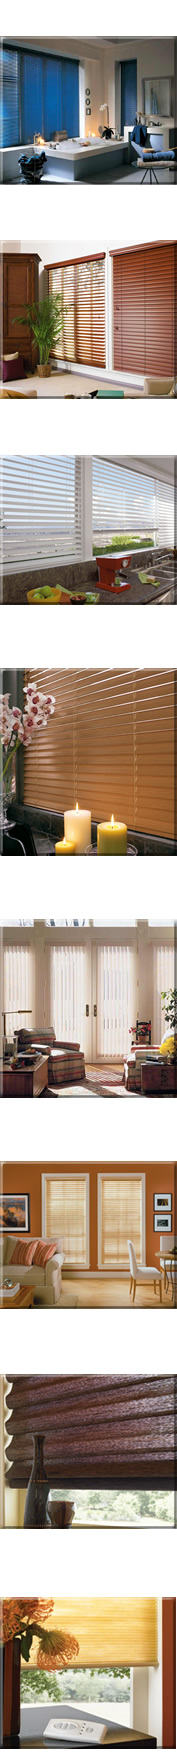 window coverings and window treatments serving San Diego